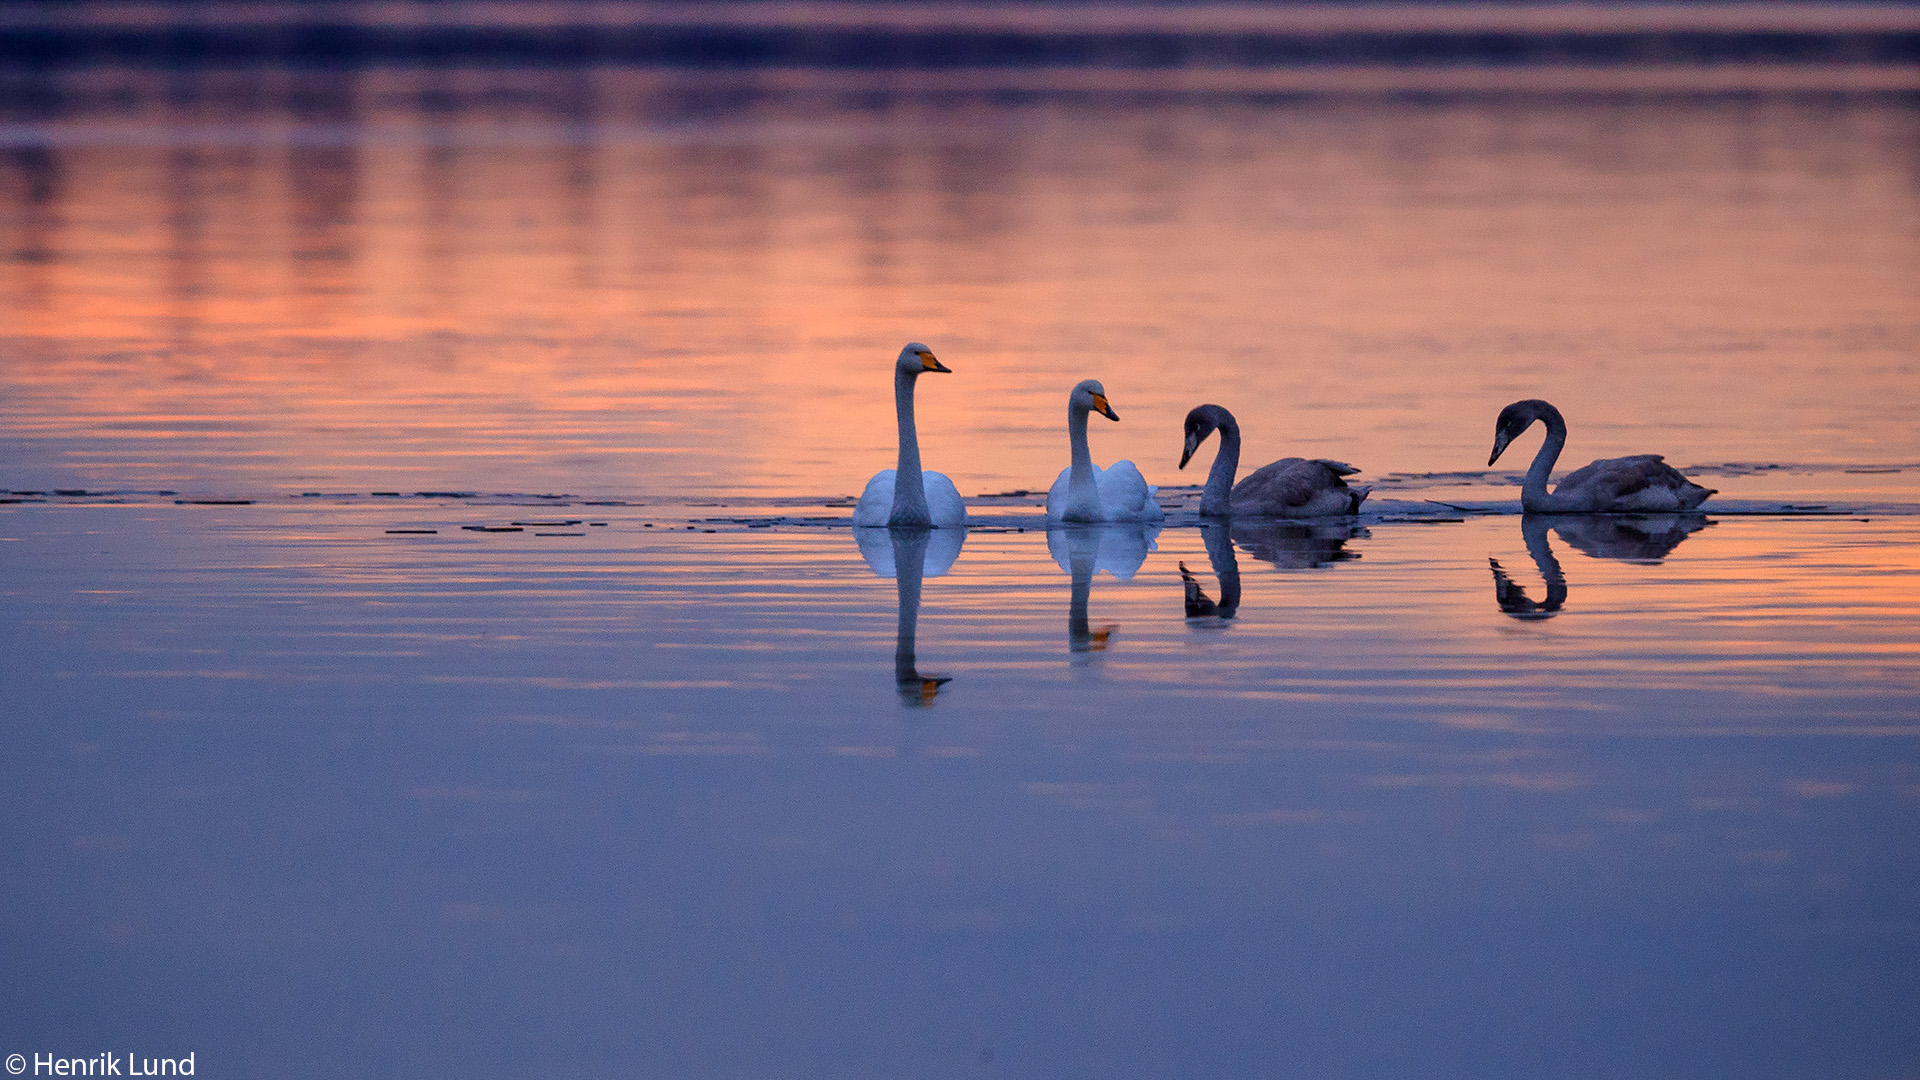 Whooper swans when the first ice cover is setting. Lappträsk, Finland. November 2017.